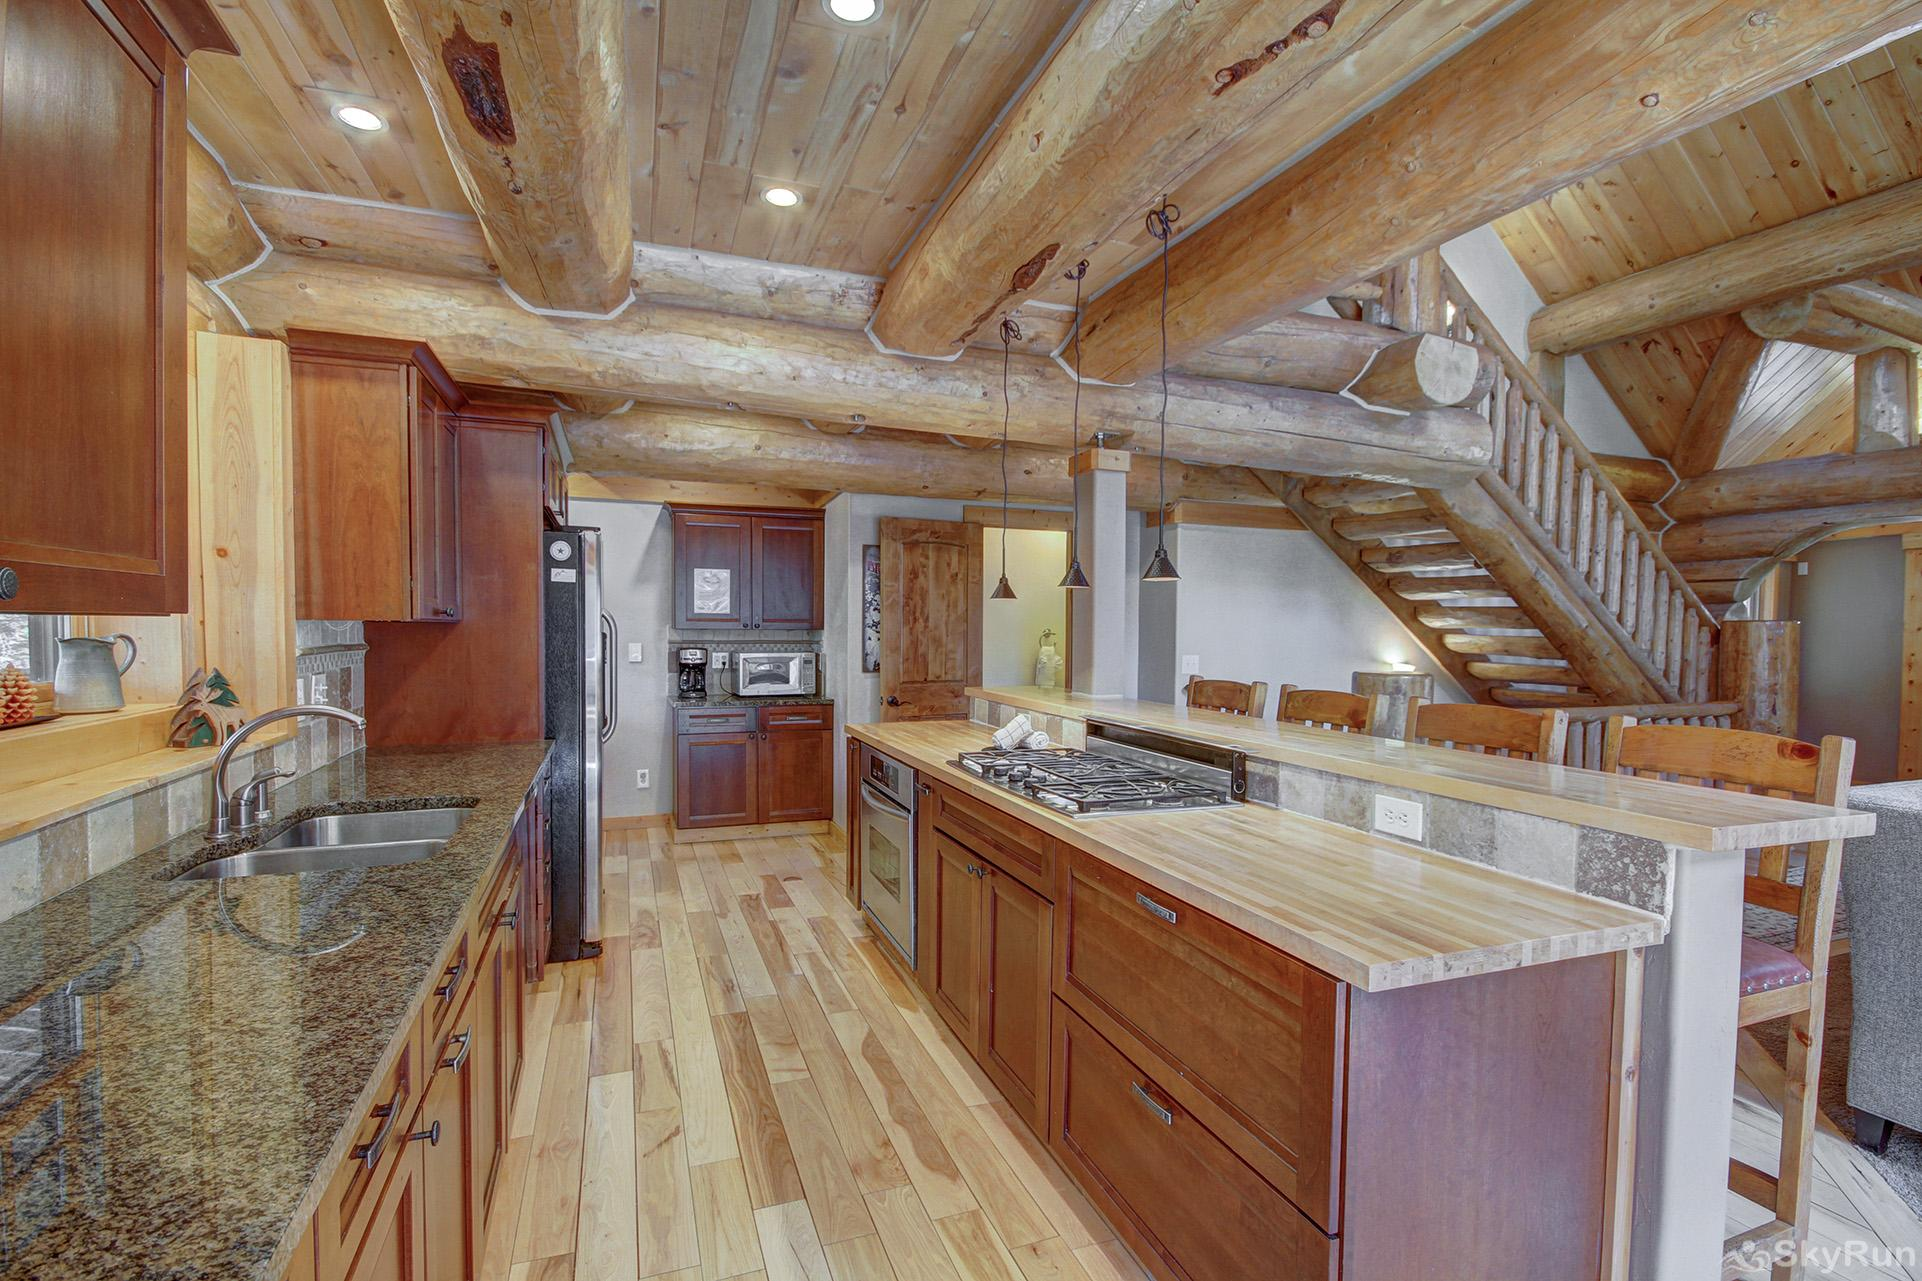 Timber Ridge Lodge Kitchen with countertop seating for 4